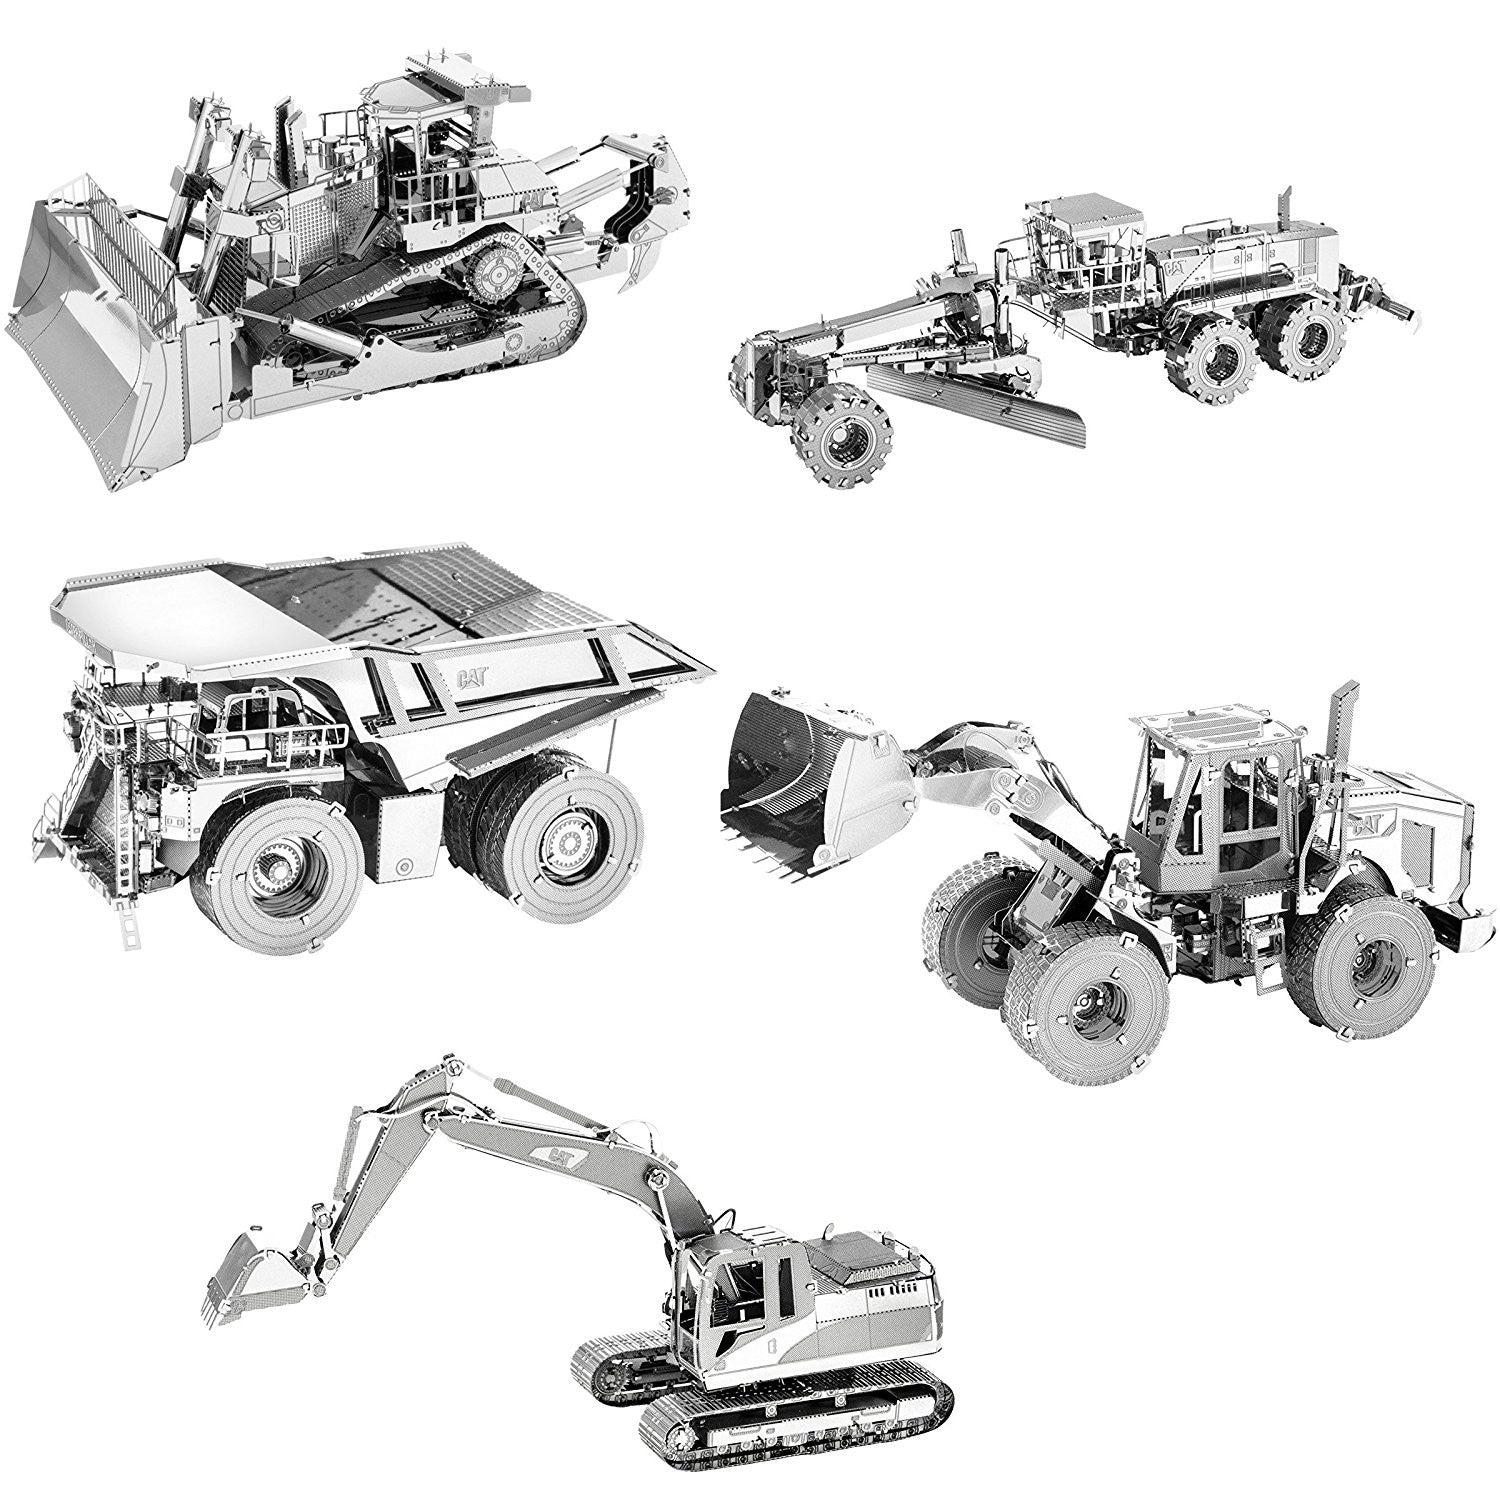 Metal Earth CAT 3D Metal Model Kit Set of 5: Motor Grader, Excavator, Wheel Loader, Mining Truck, Dozer